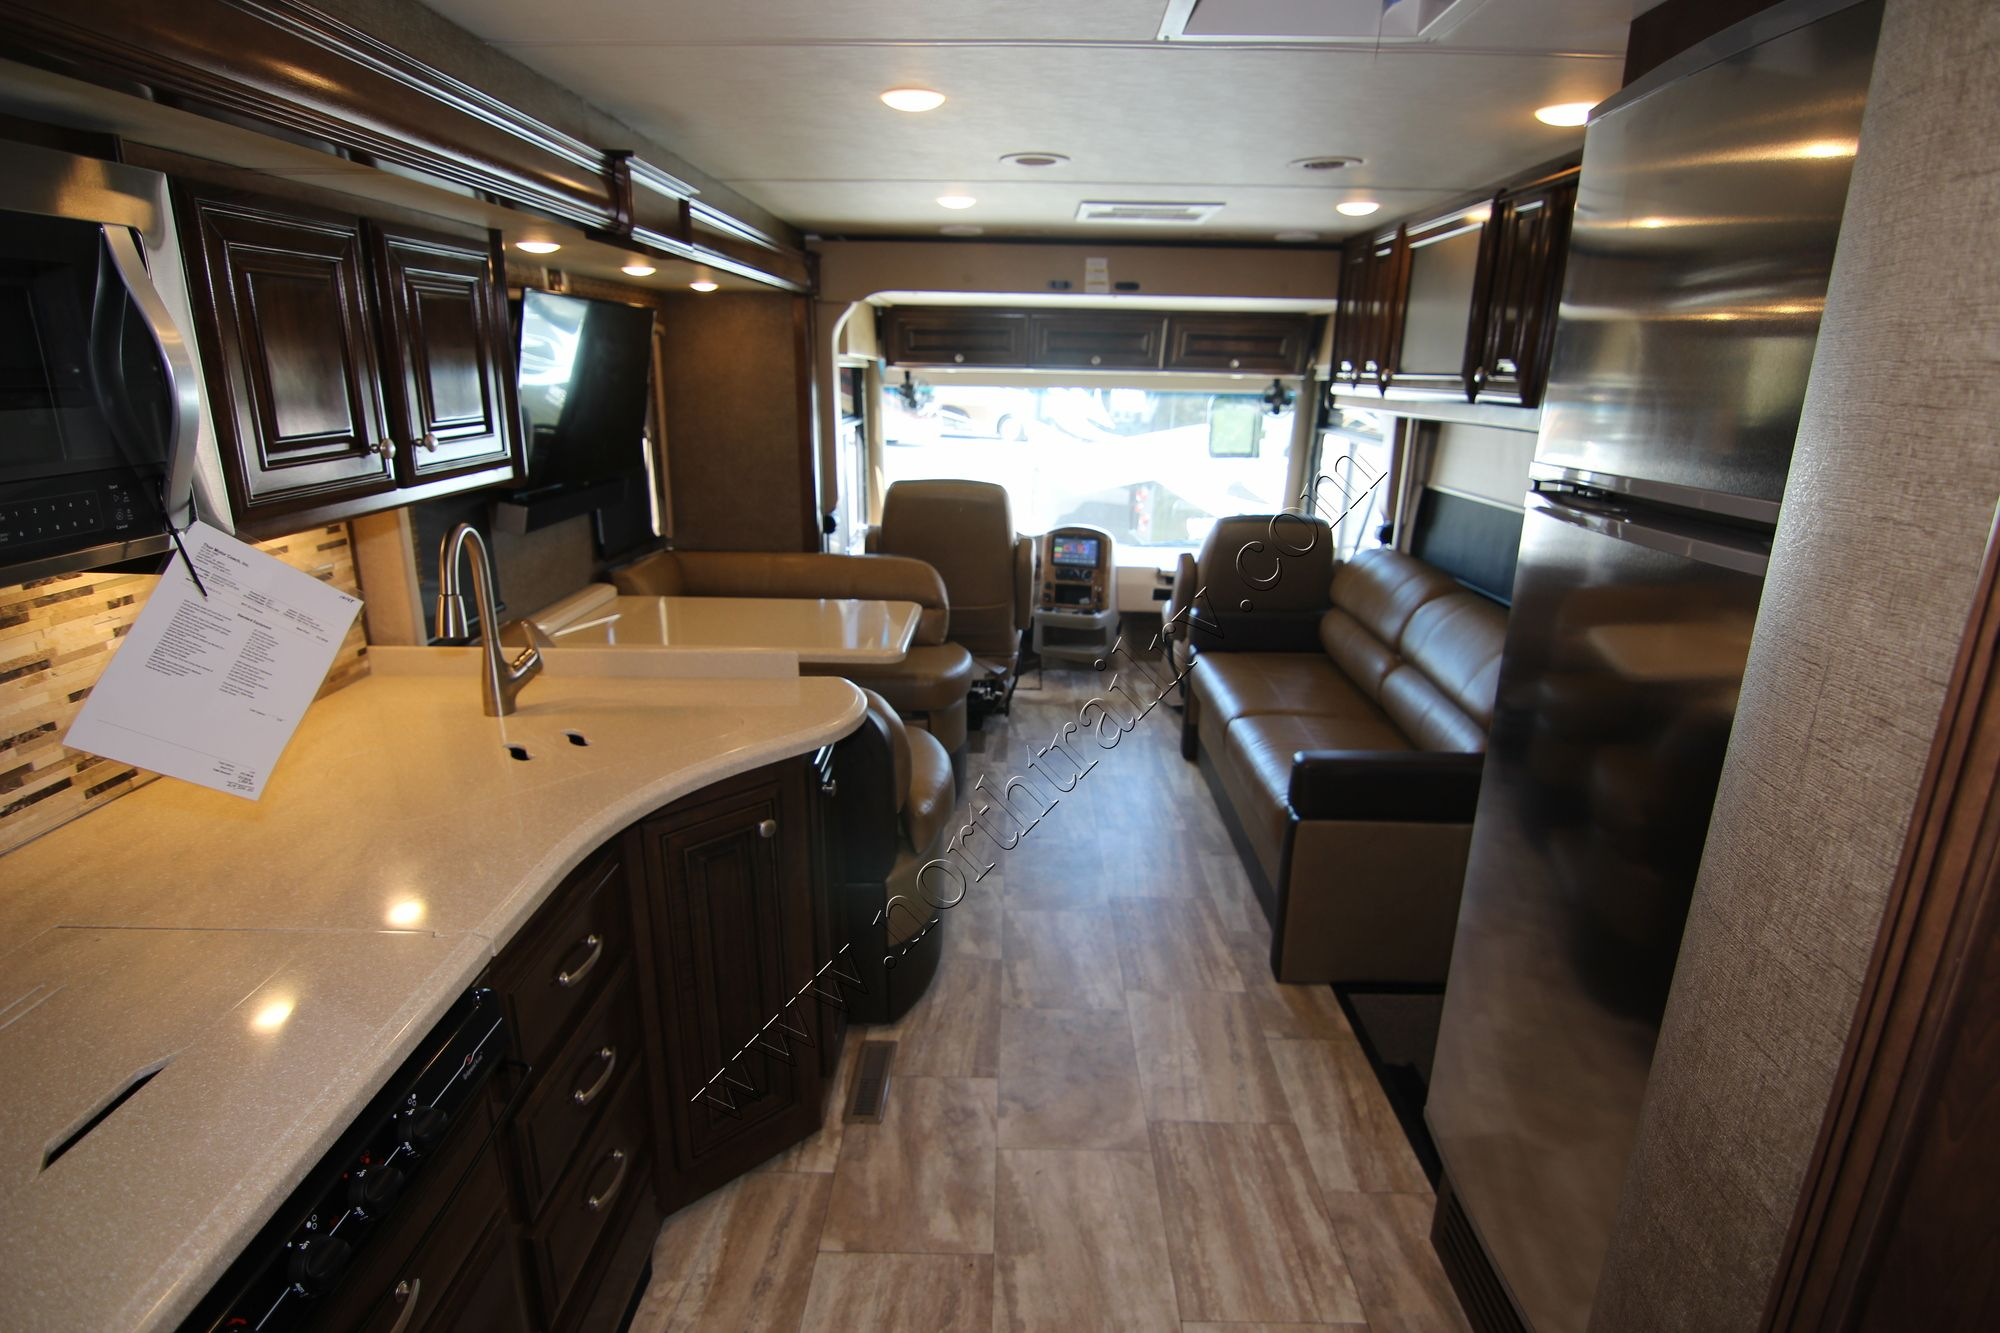 2017 Thor Motor Coach Palazzo 33 3 Class A Diesel